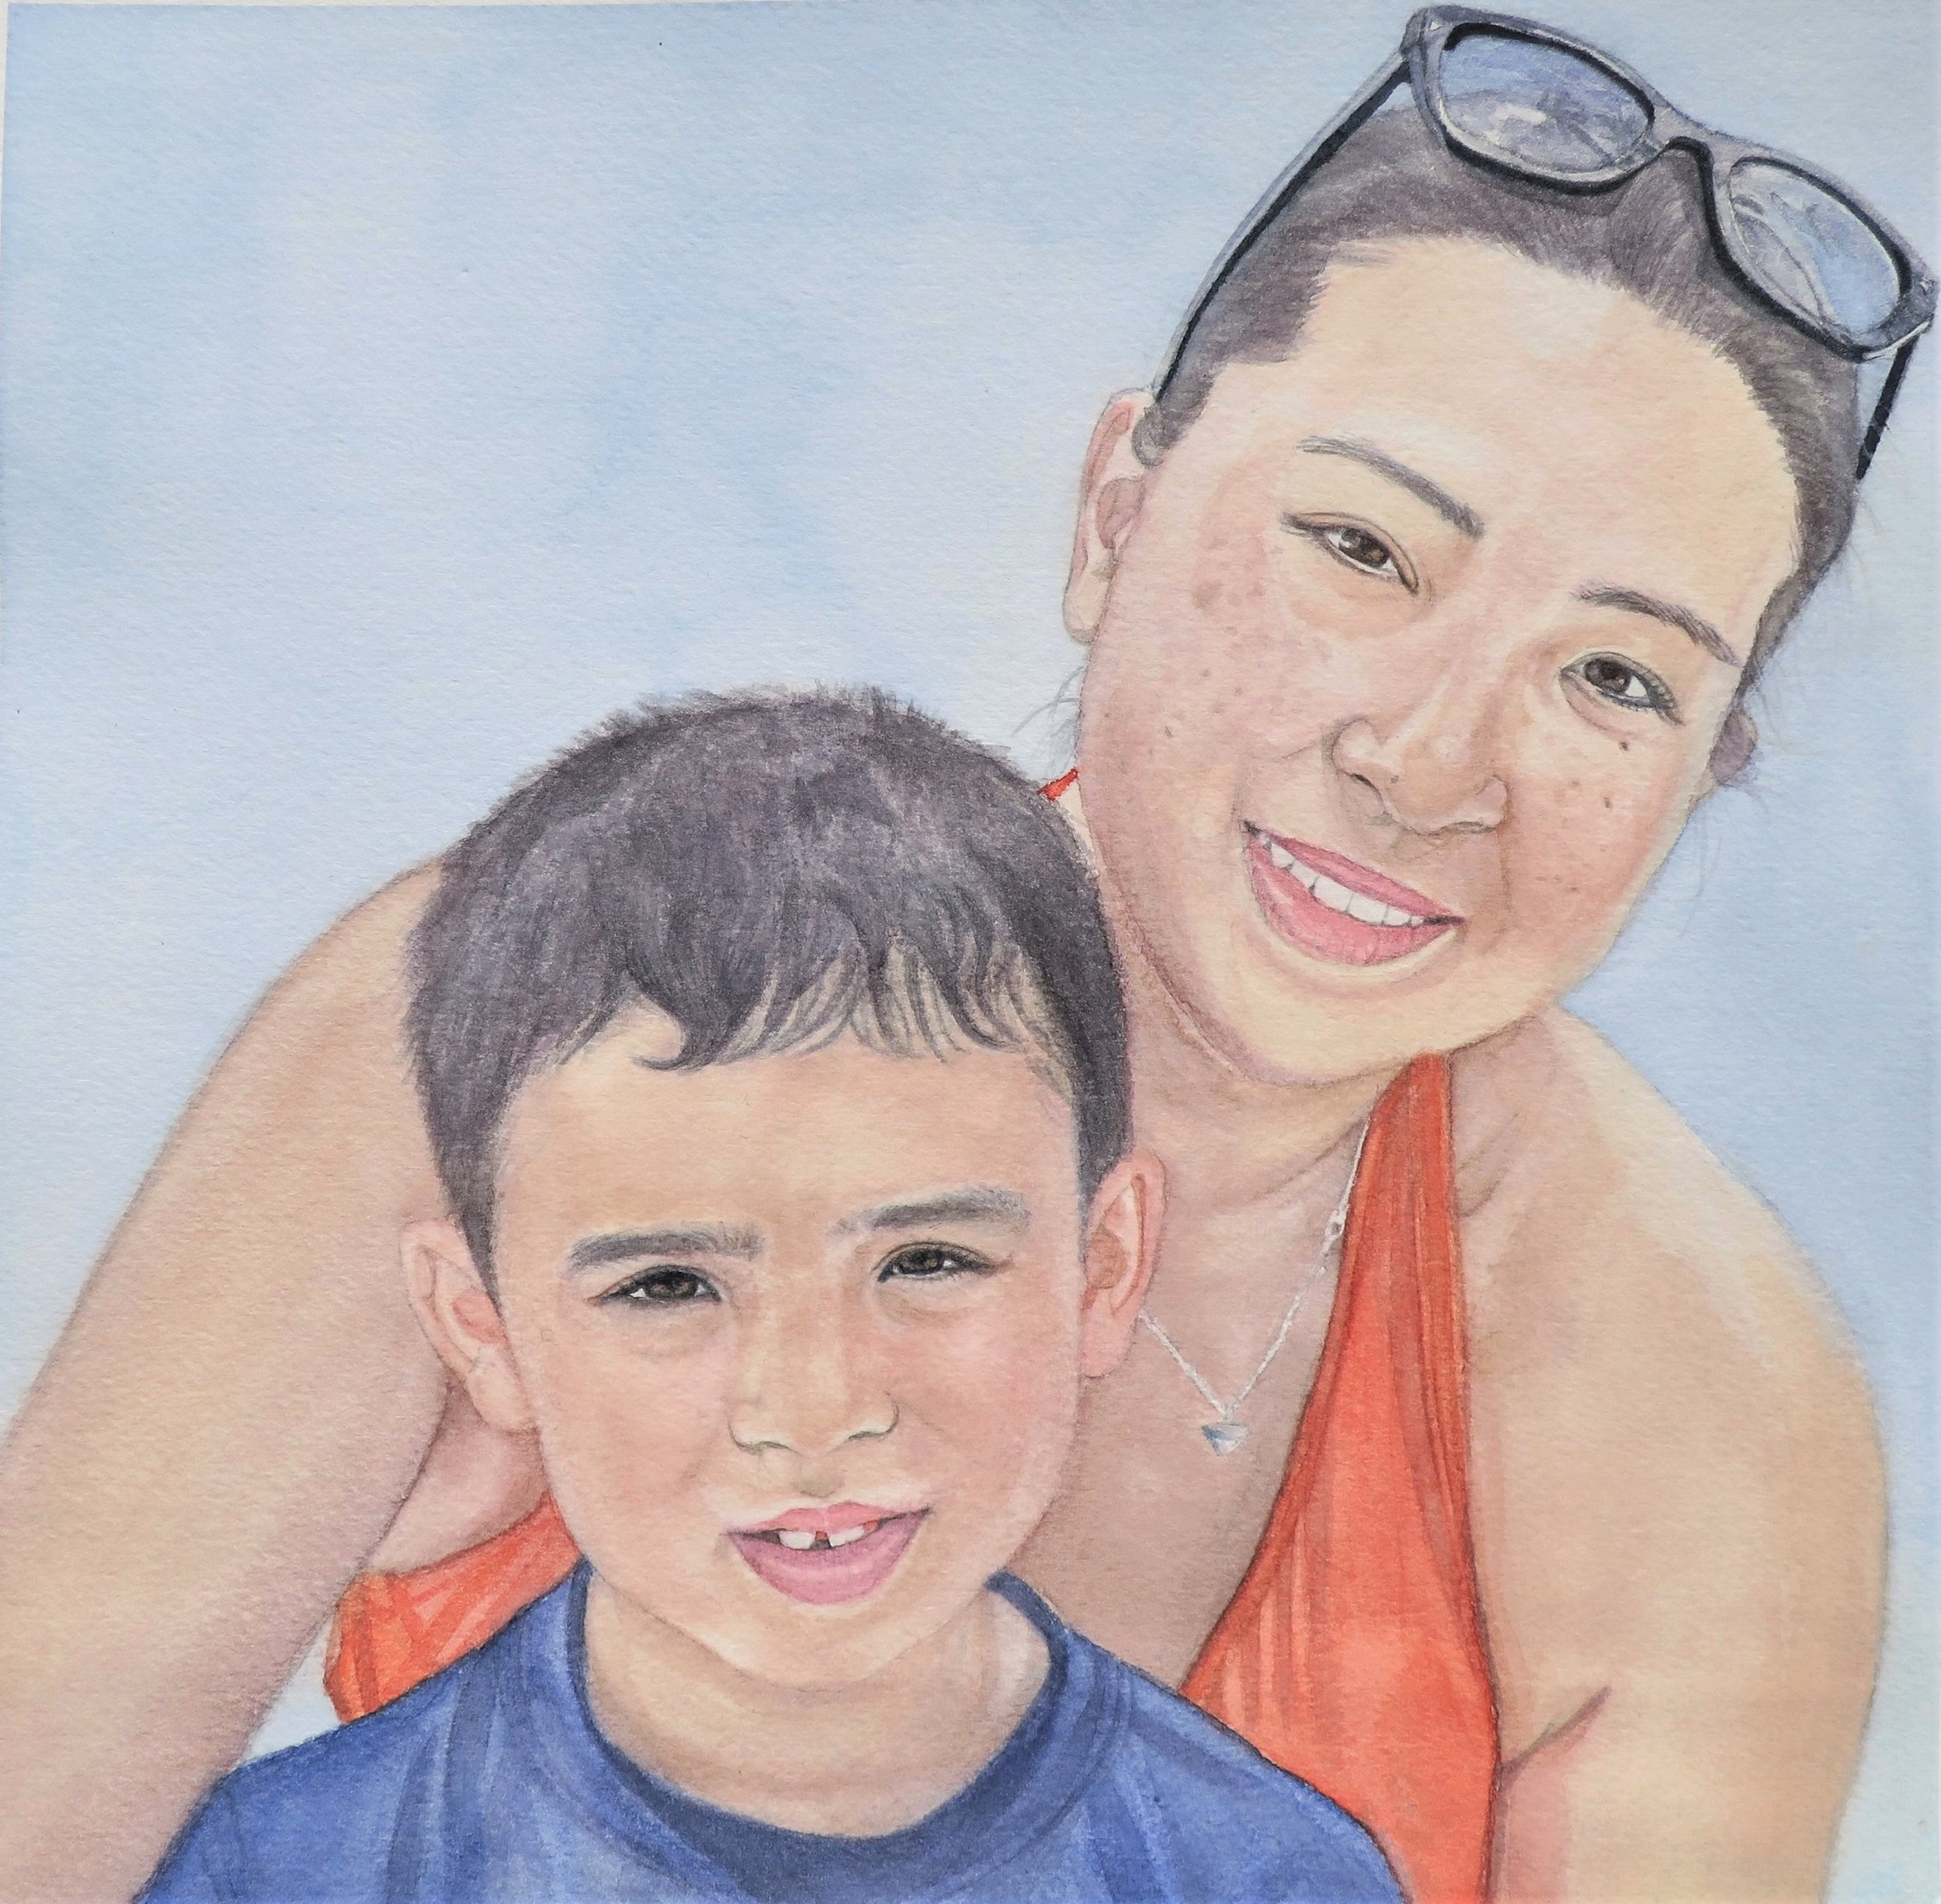 I deepened the background, my son's hair and shirt.  Finished!